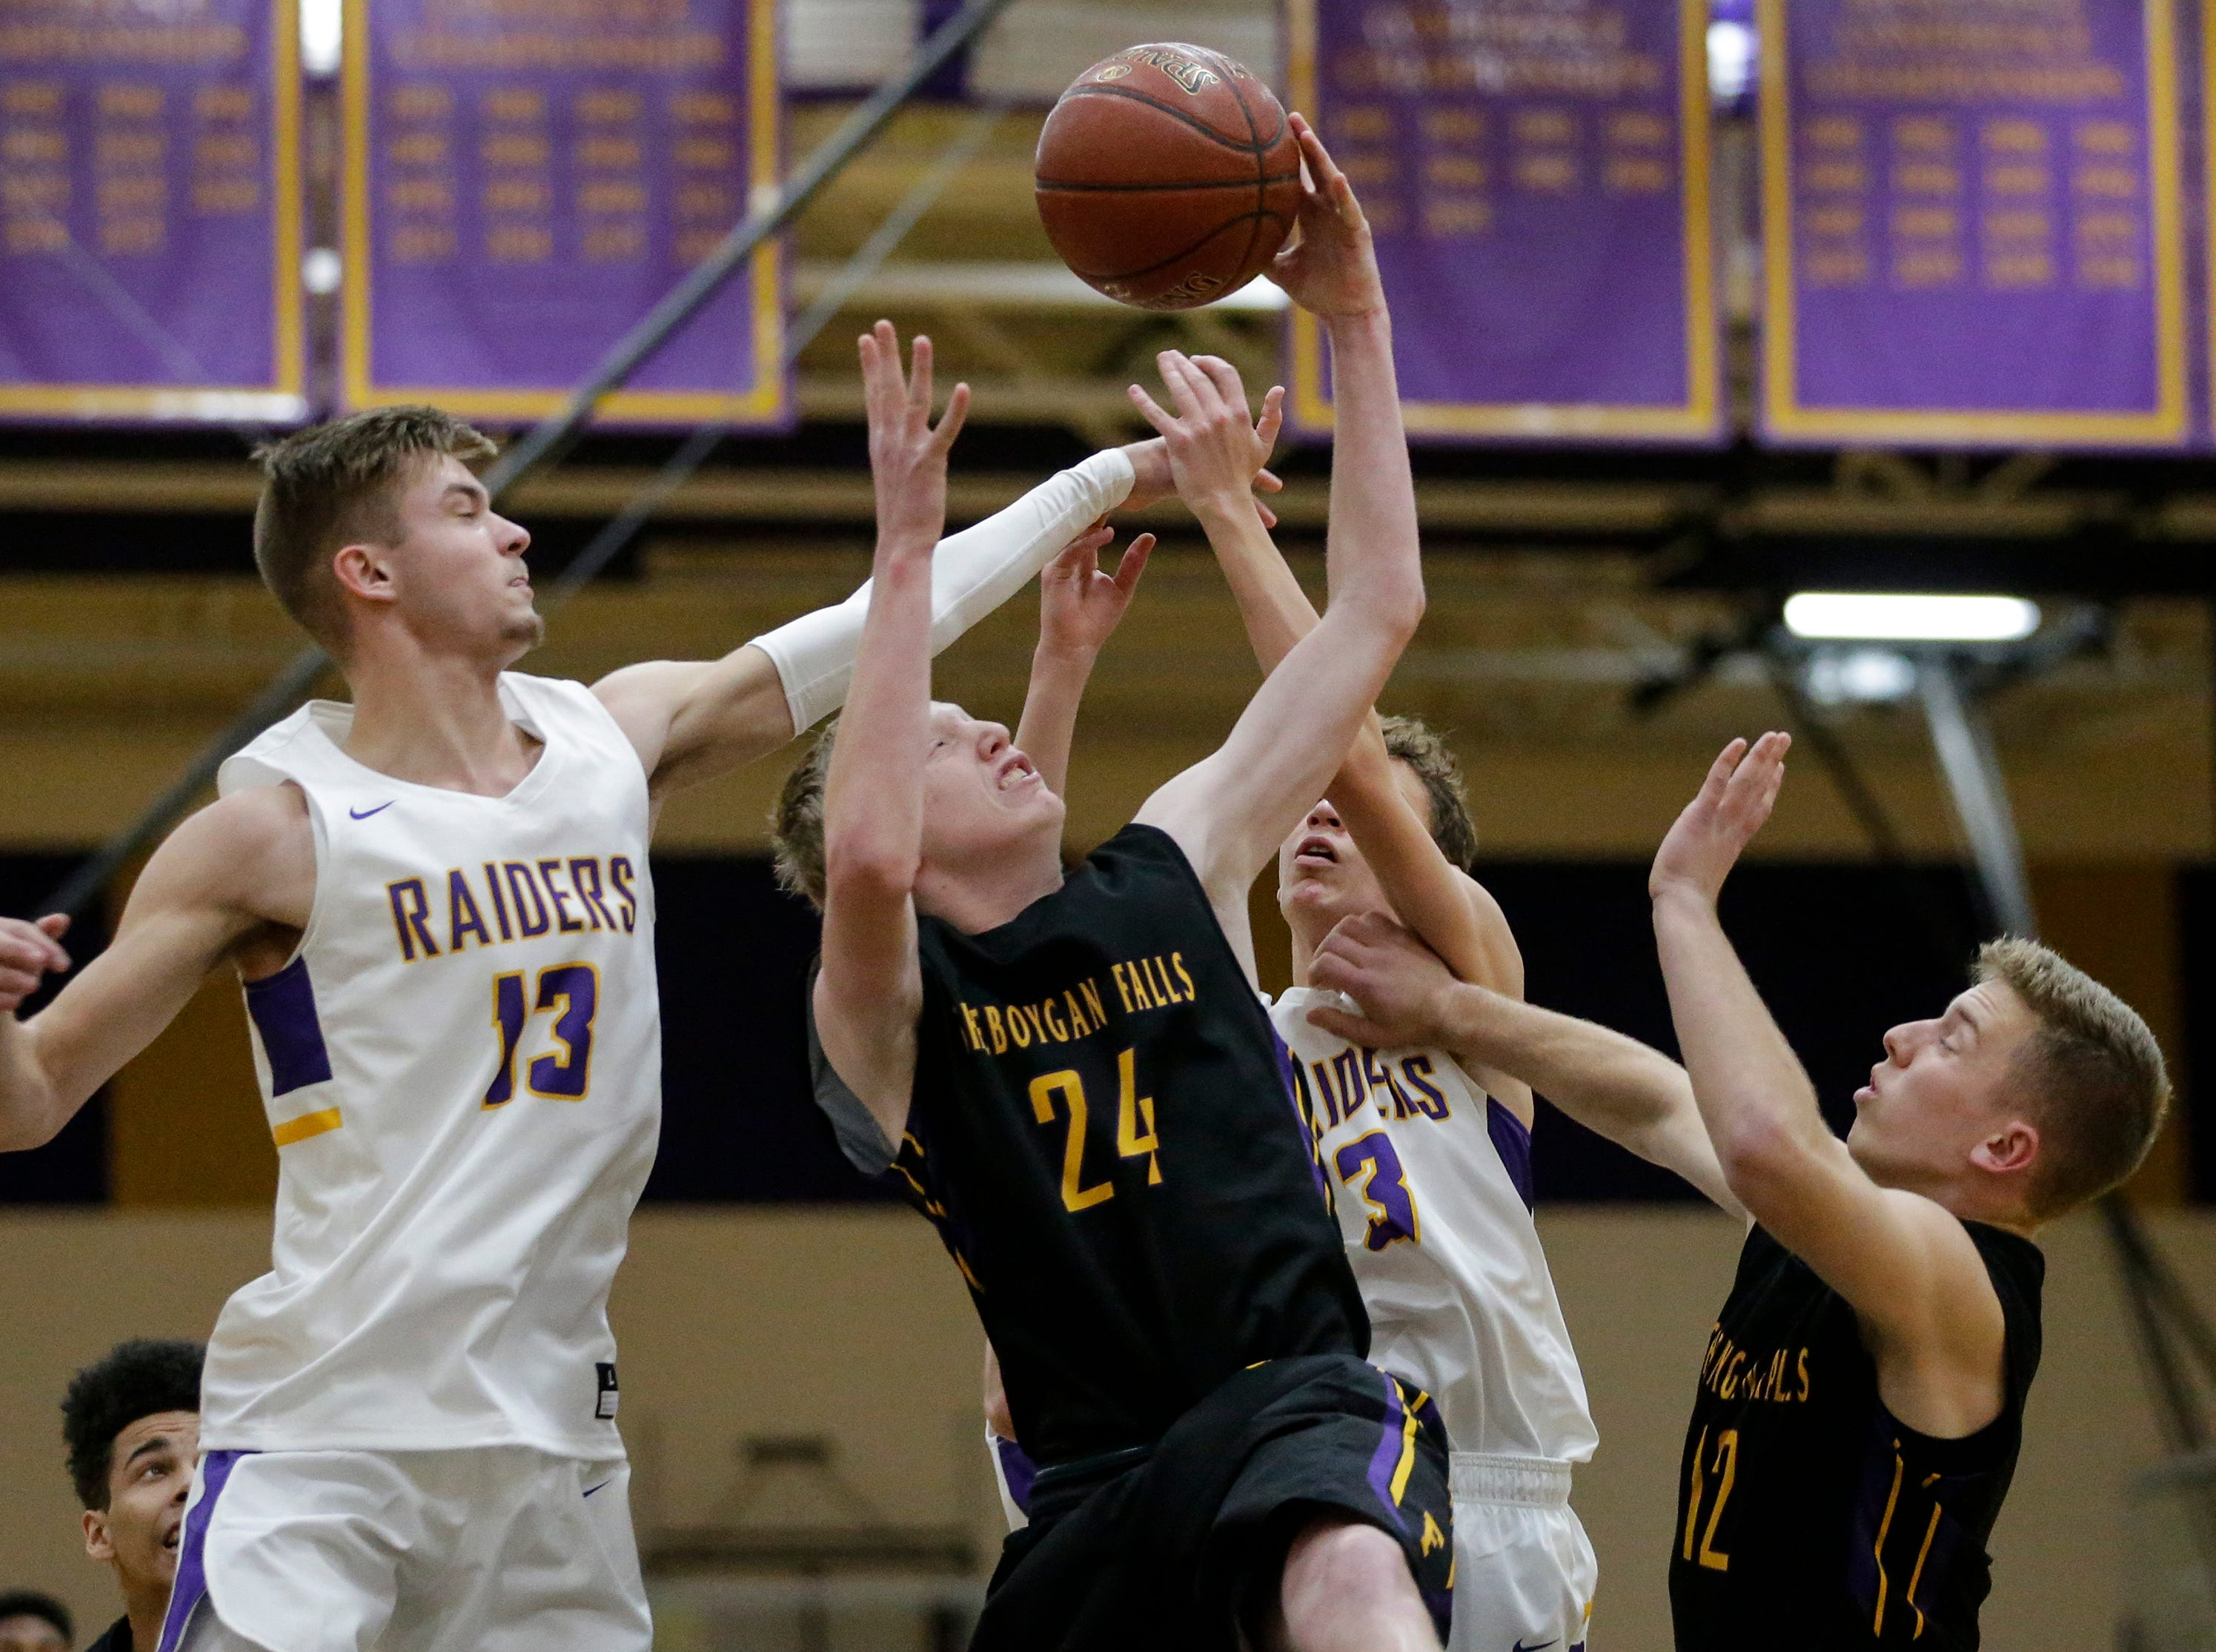 Sheboygan Falls' Isaac Klemme grabs a rebound against Two Rivers during an Eastern Wisconsin Conference game at Two Rivers High School Tuesday, December 4, 2018, in Two Rivers, Wis. Joshua Clark/USA TODAY NETWORK-Wisconsin